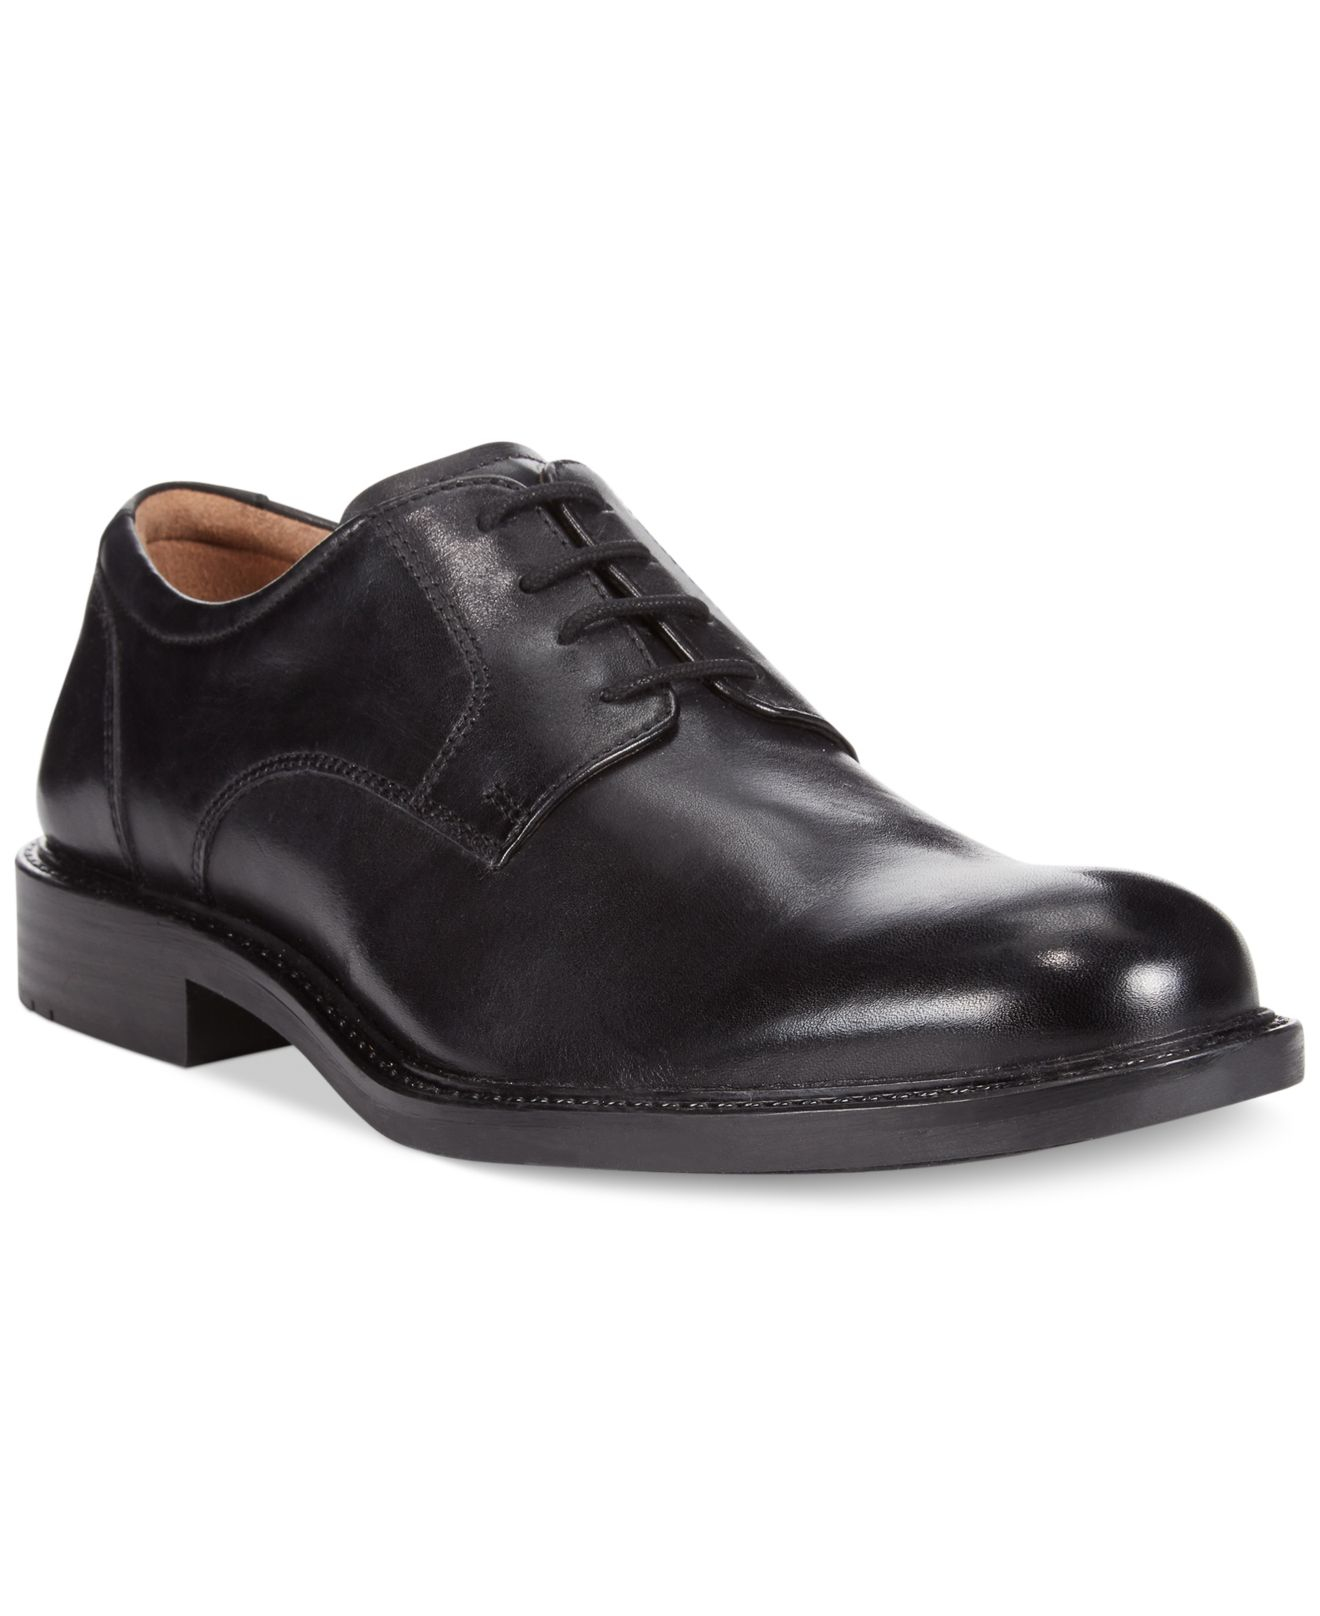 Johnston Amp Murphy Tabor Plain Toe Oxfords In Black For Men